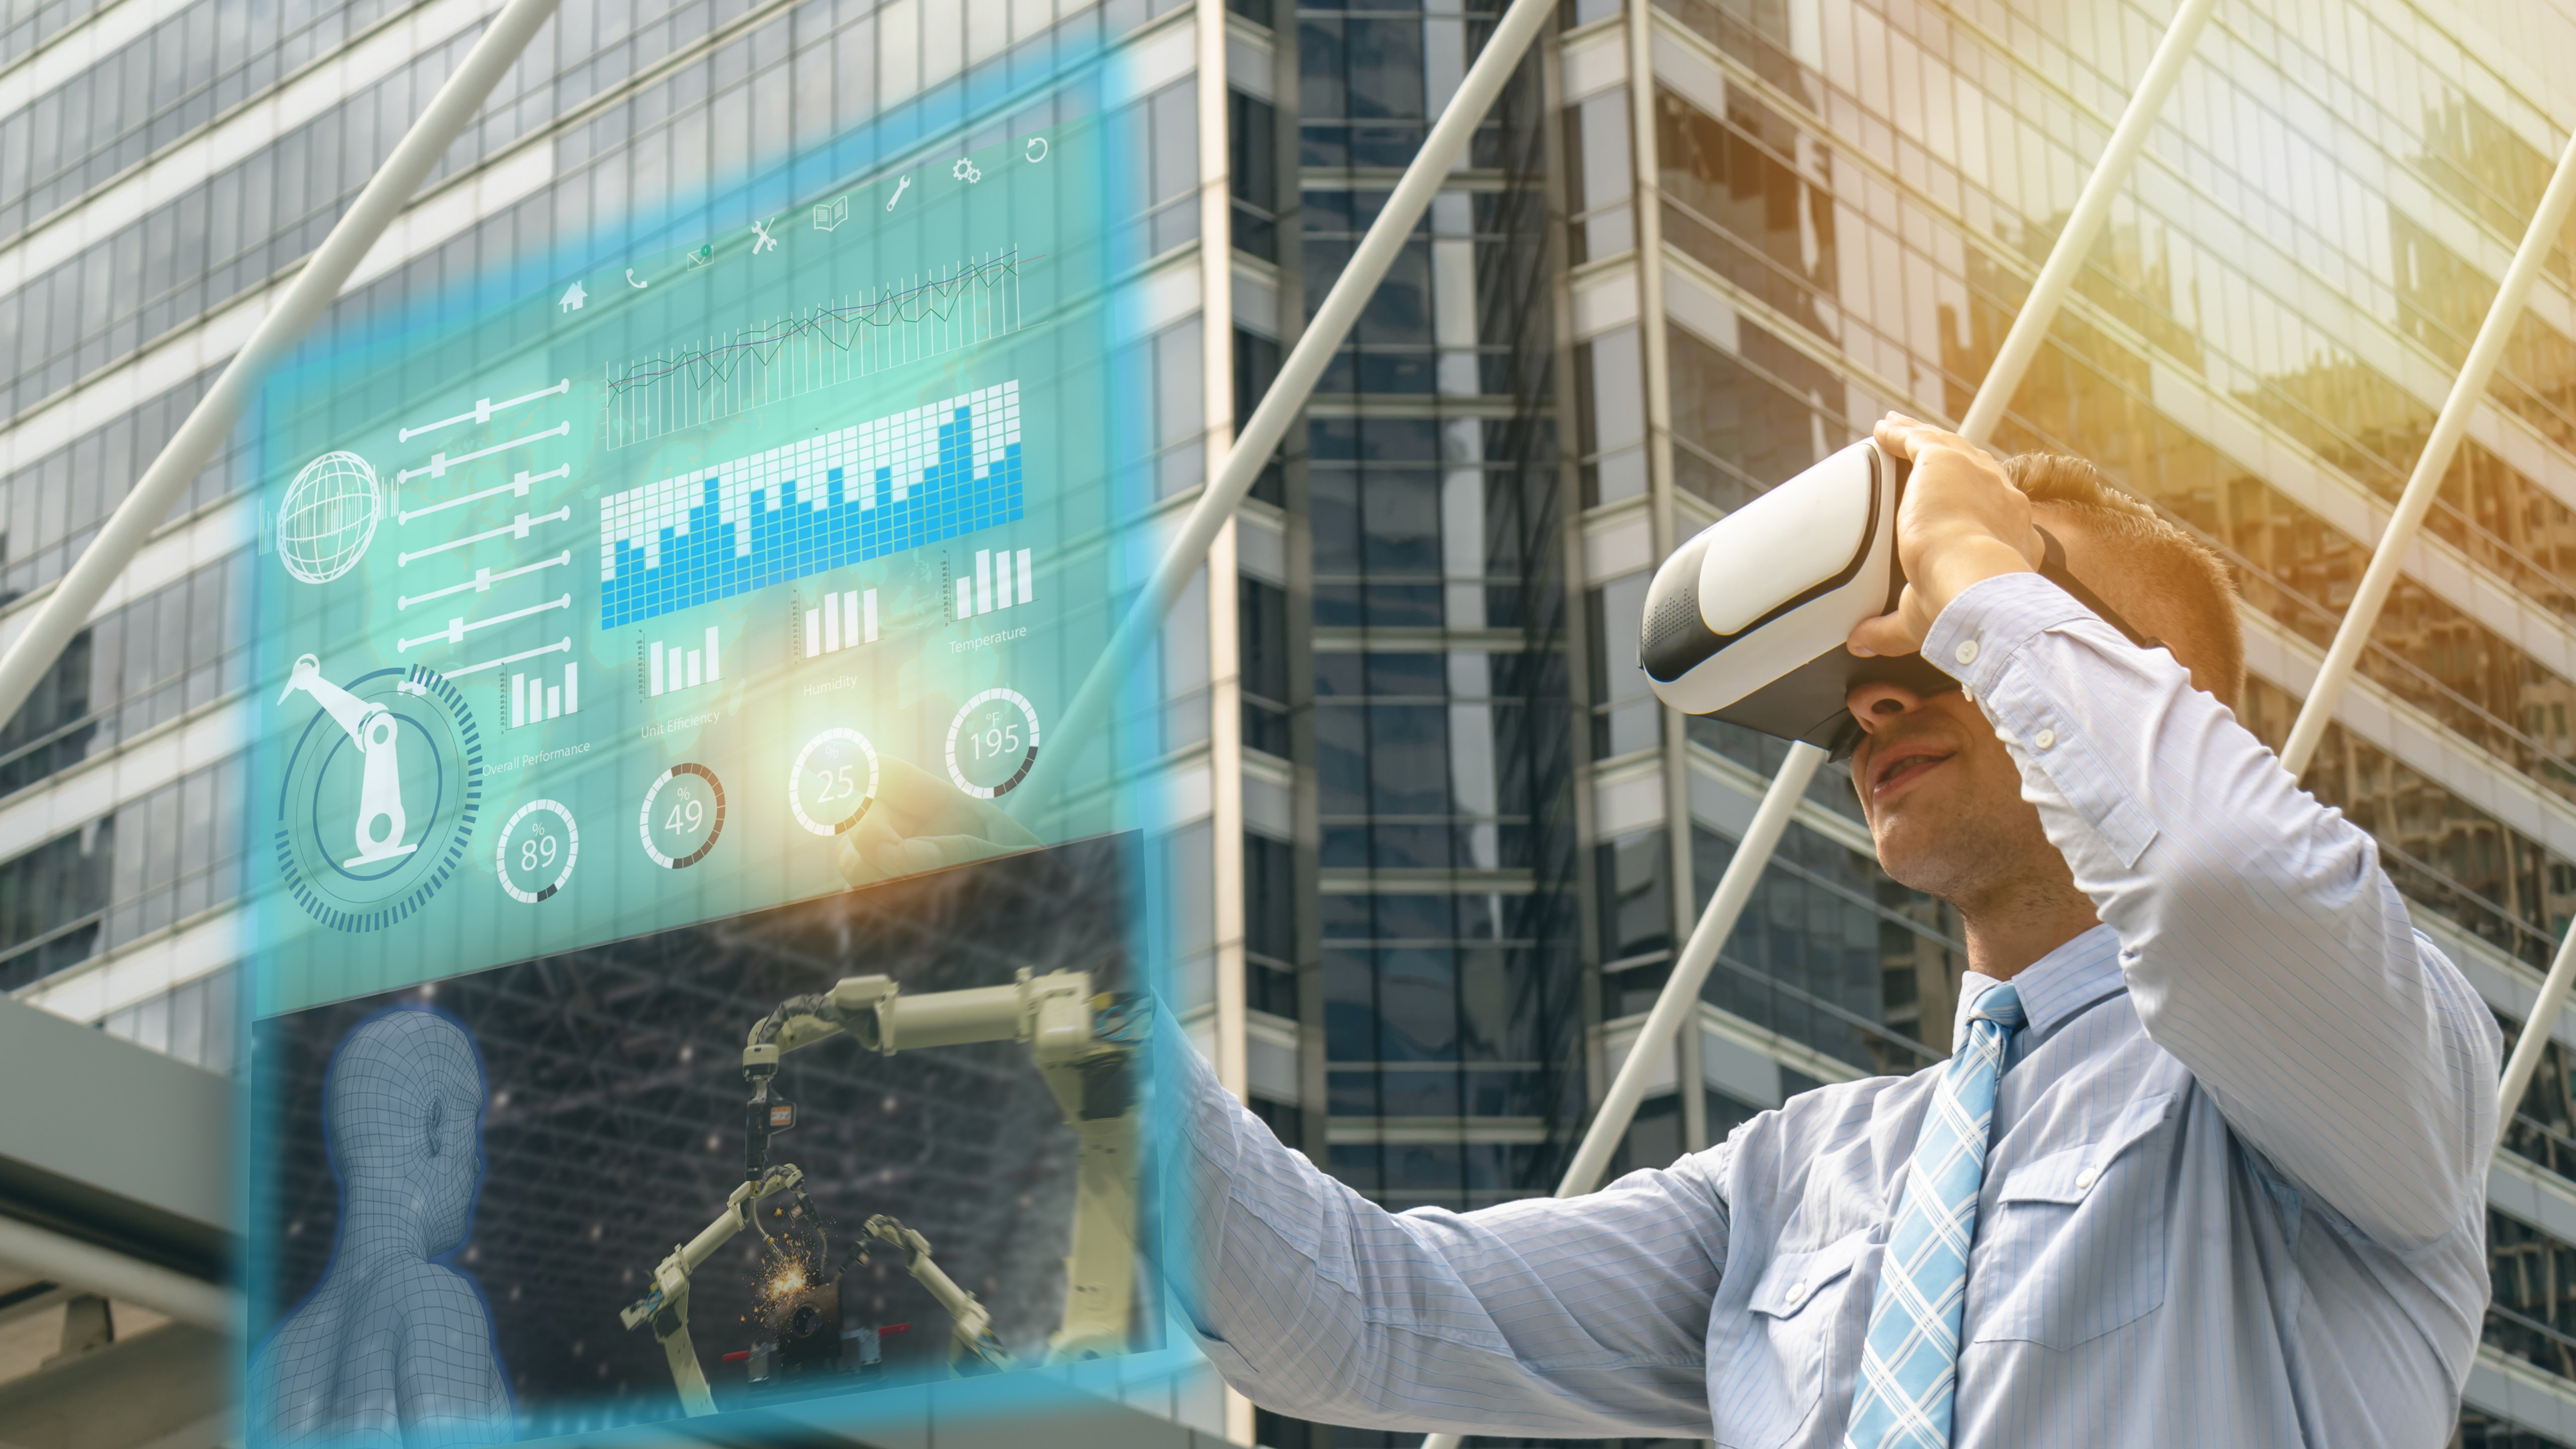 Man wearing VR head gear interacting with a virtual screen and standing in front of a tall building with many windows